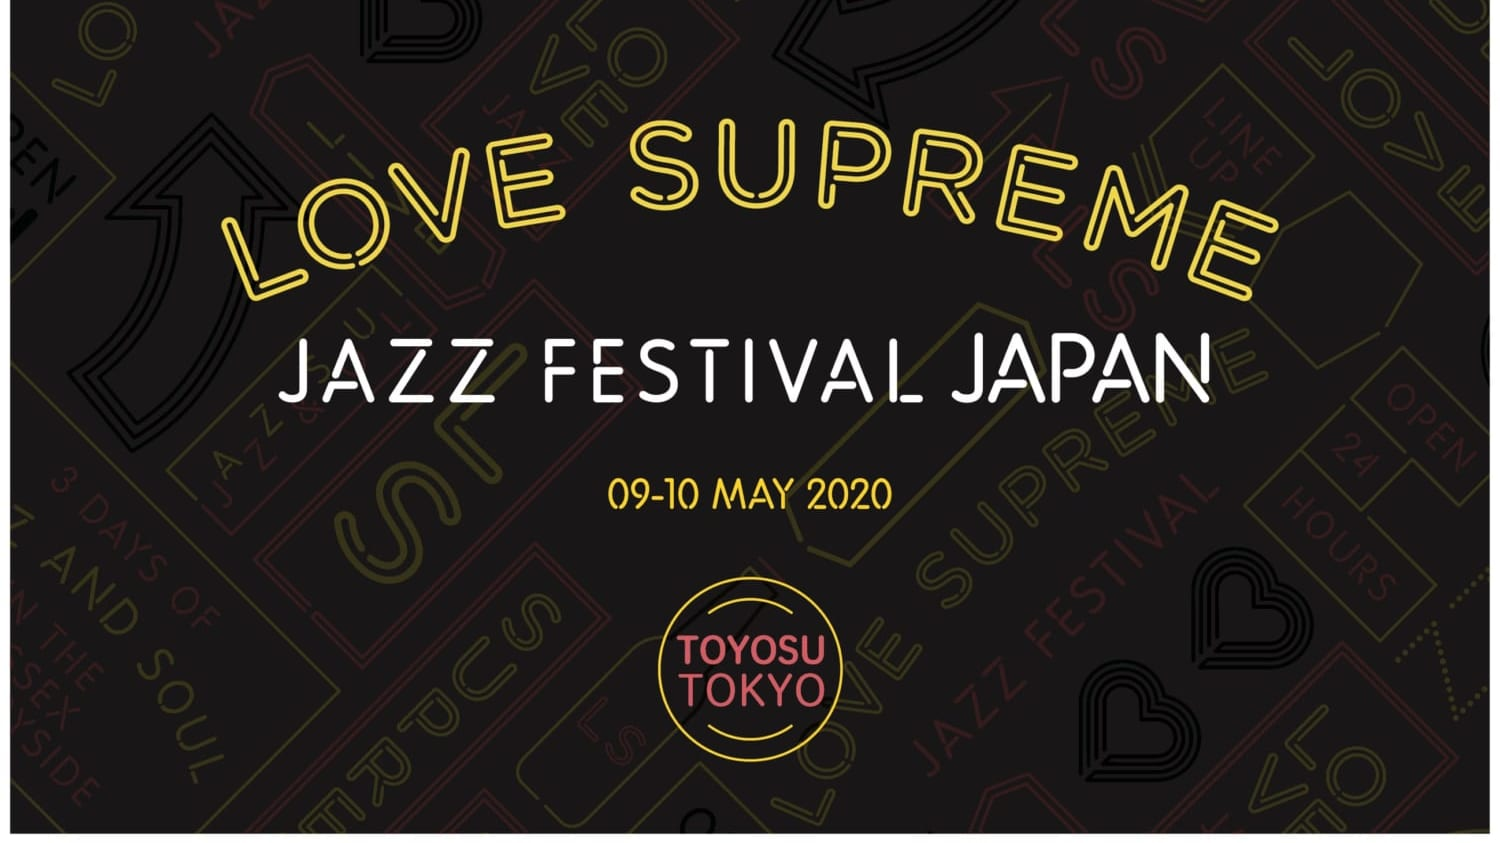 LOVE SUPREME JAZZ FESTIVAL